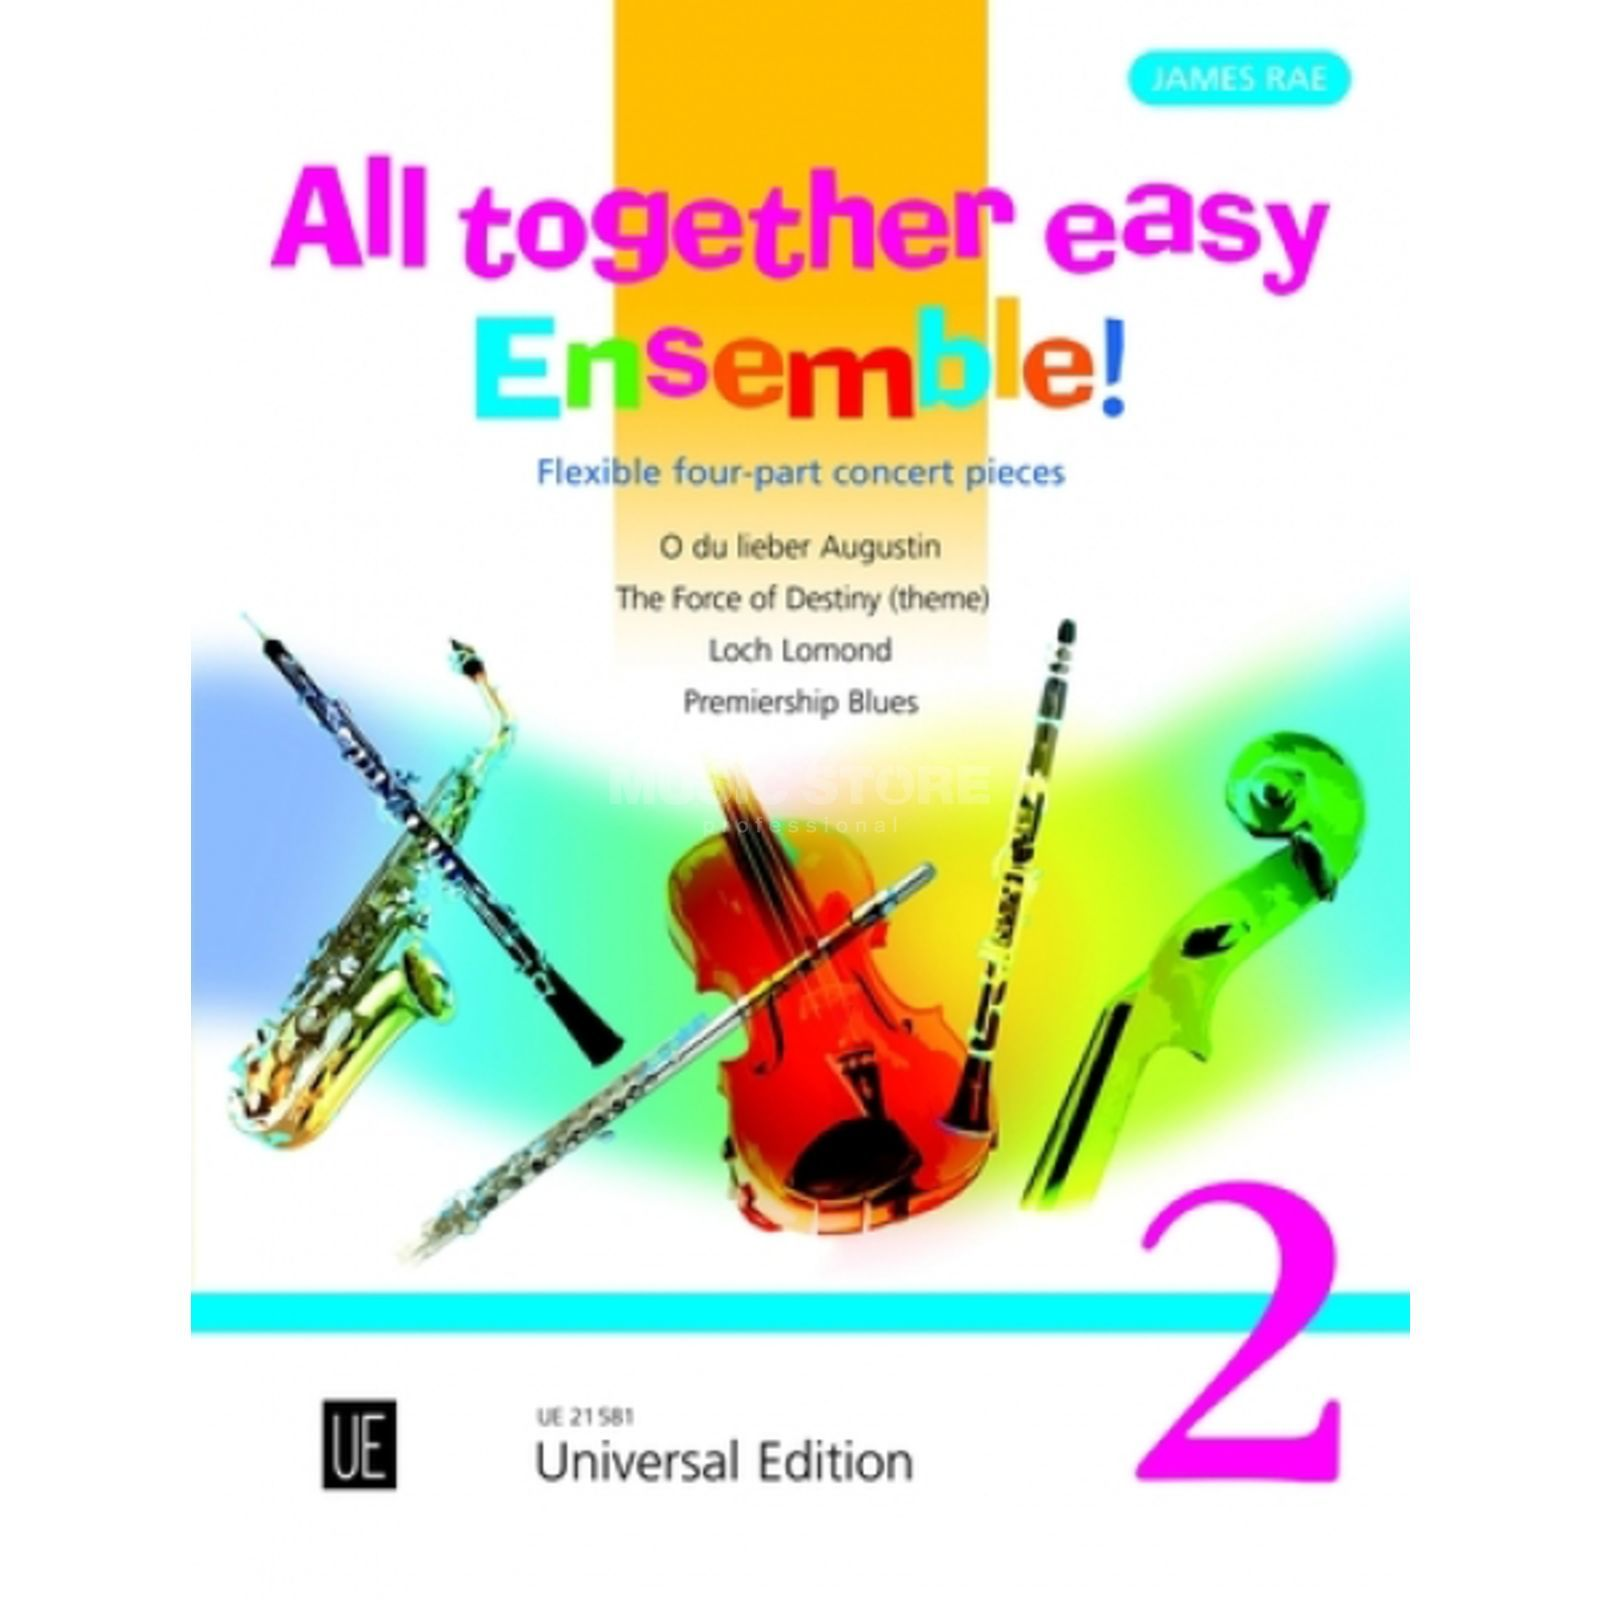 Universal Edition All together easy Ensemble! 2 James Rae, Partitur/Stimmen Produktbild